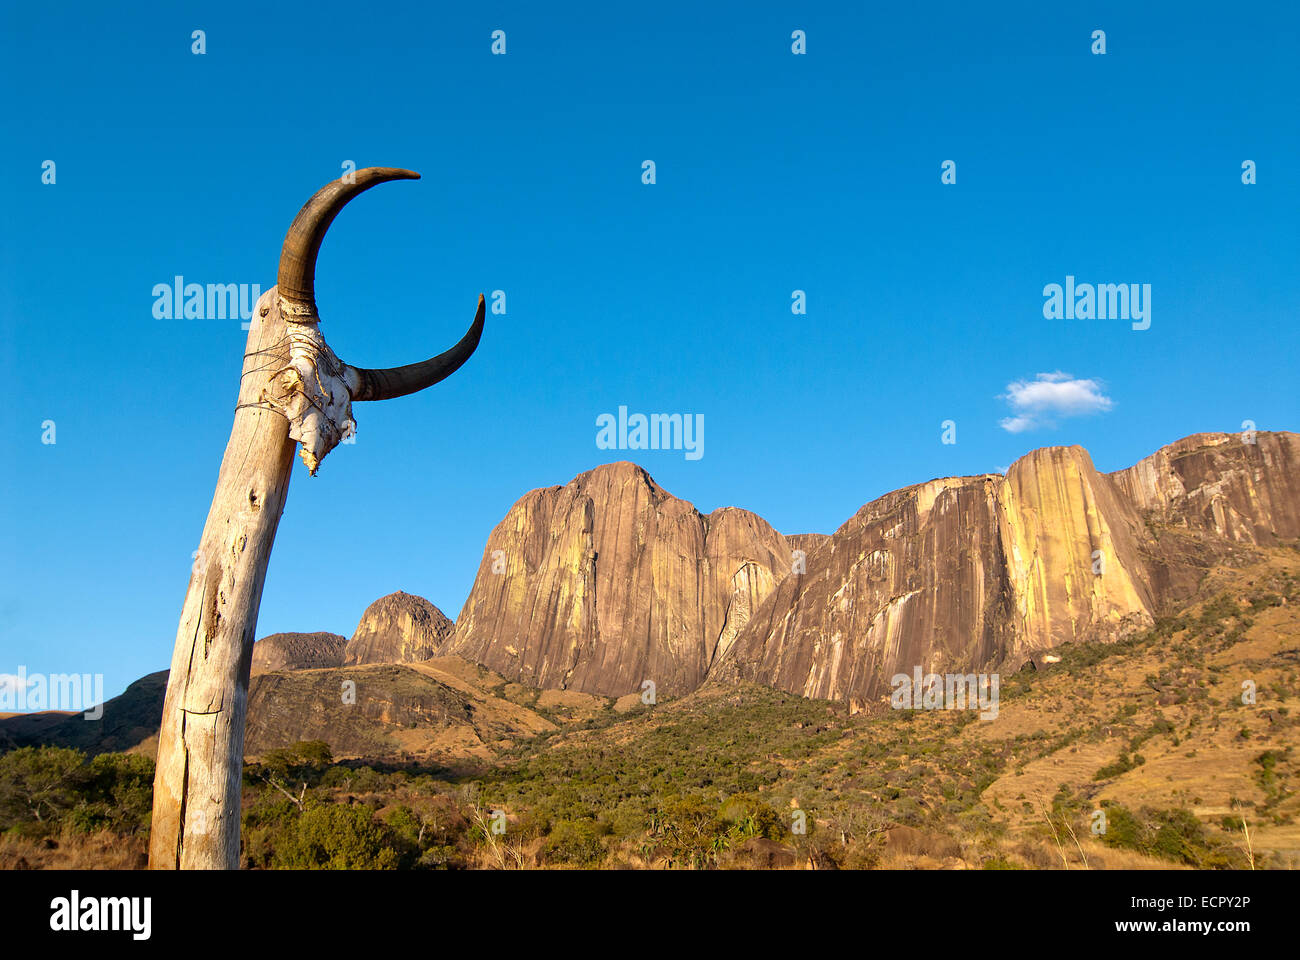 Cultural symbolism in the central highlands of Madagascar. - Stock Image